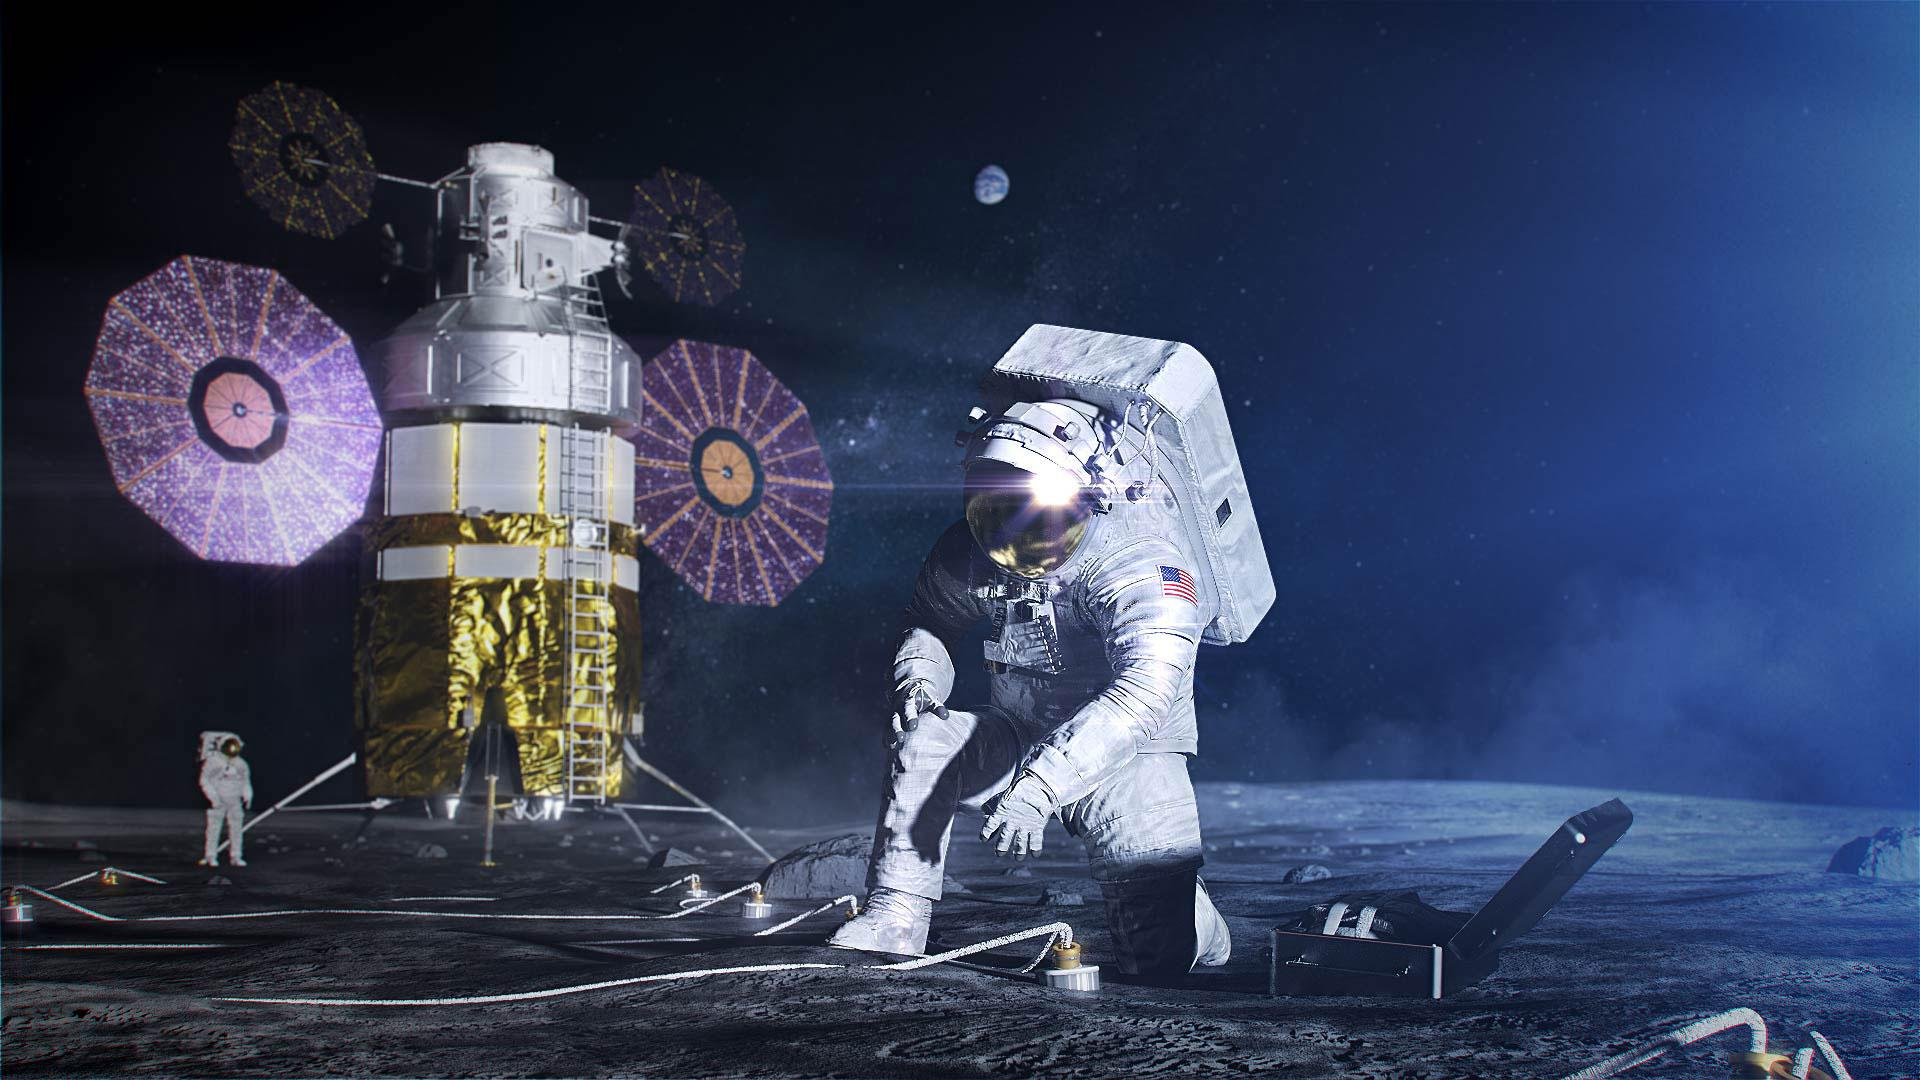 NASA loads 14 companies with $370M for 'tipping point' technologies – Yahoo Finance Australia